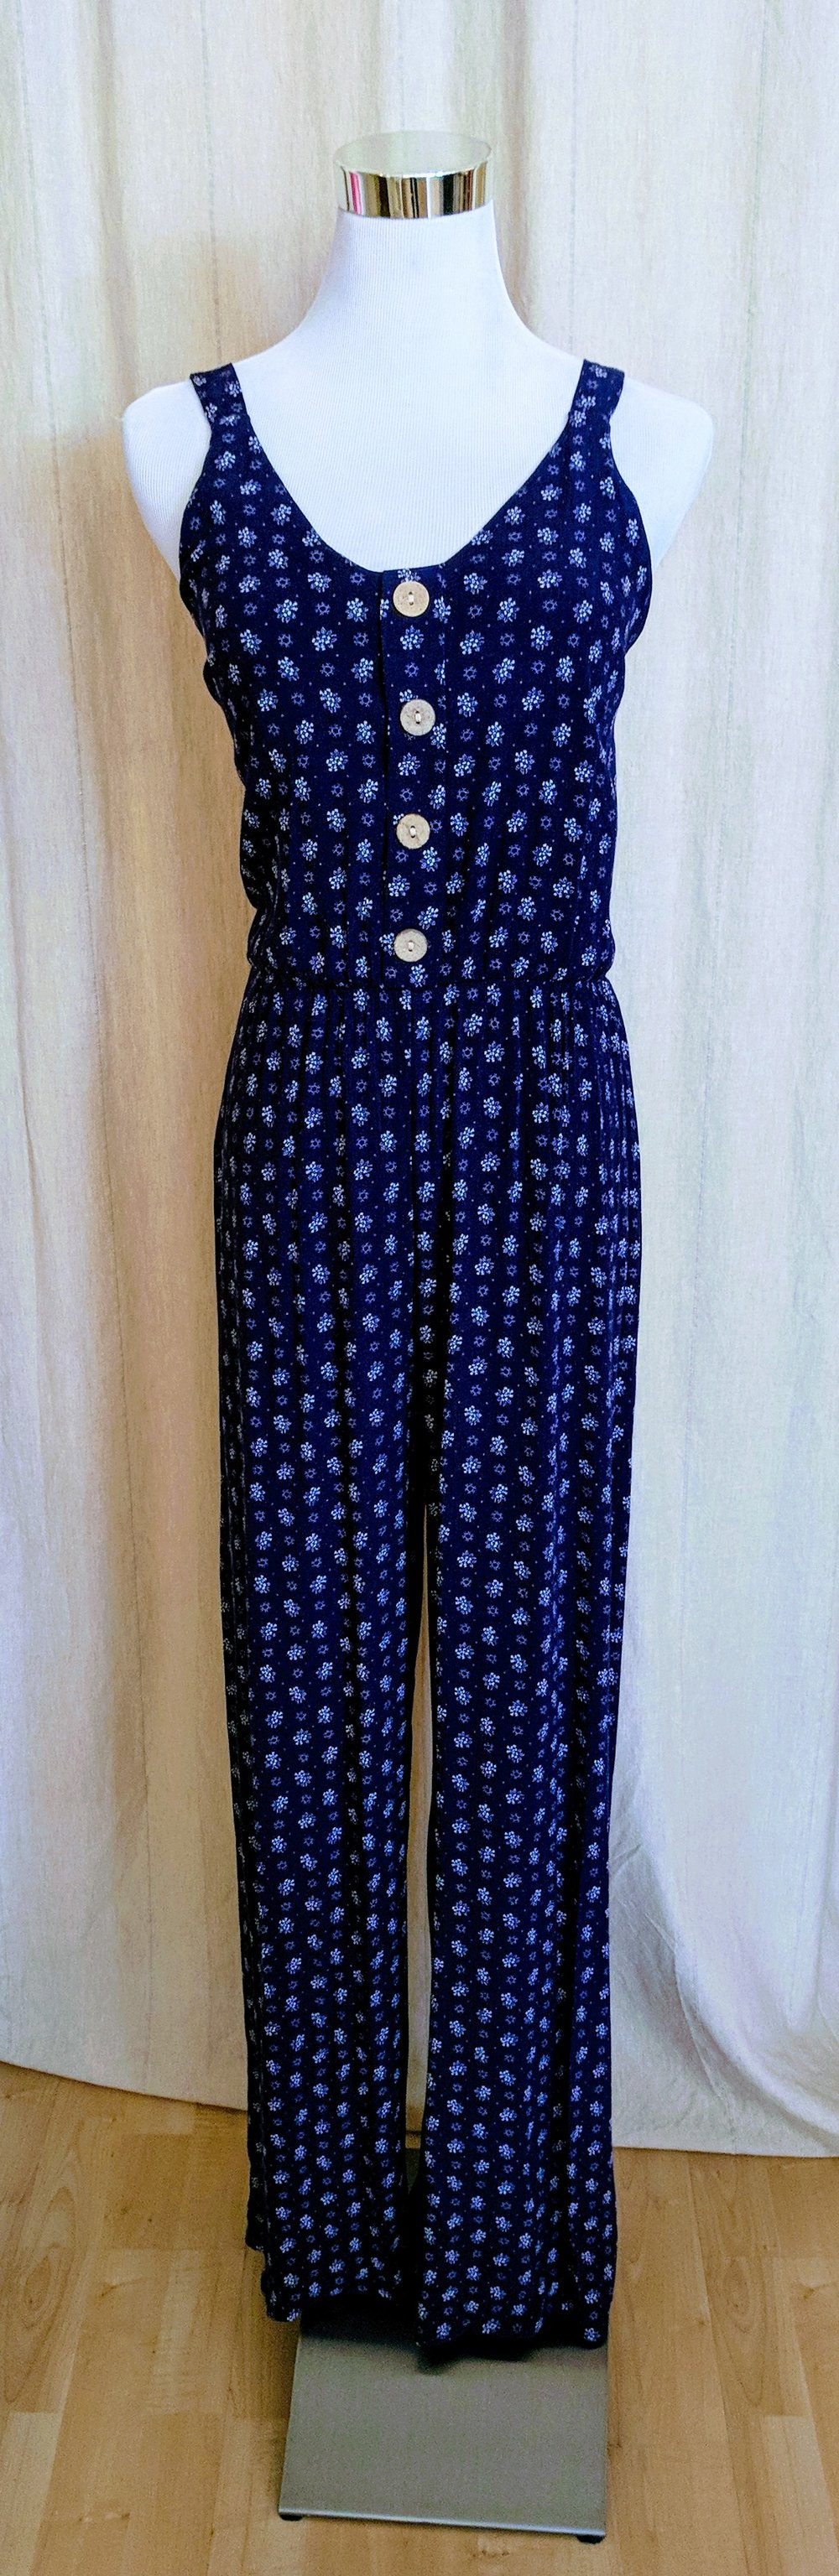 Navy jumpsuit with tie detail on back.